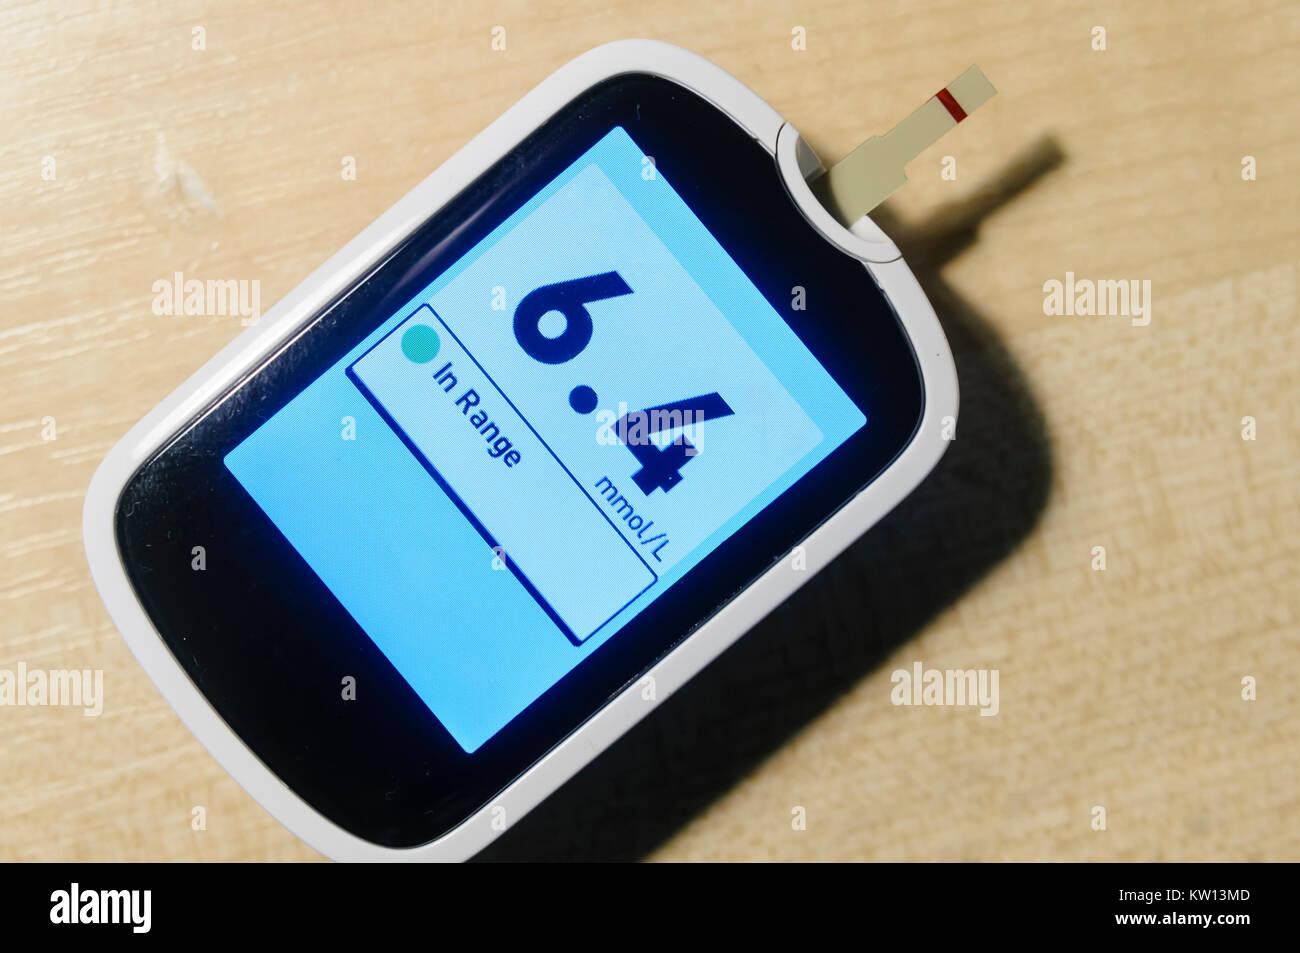 Blood glucose monitor showing a glucose level of 6.4 mmol/L - Stock Image